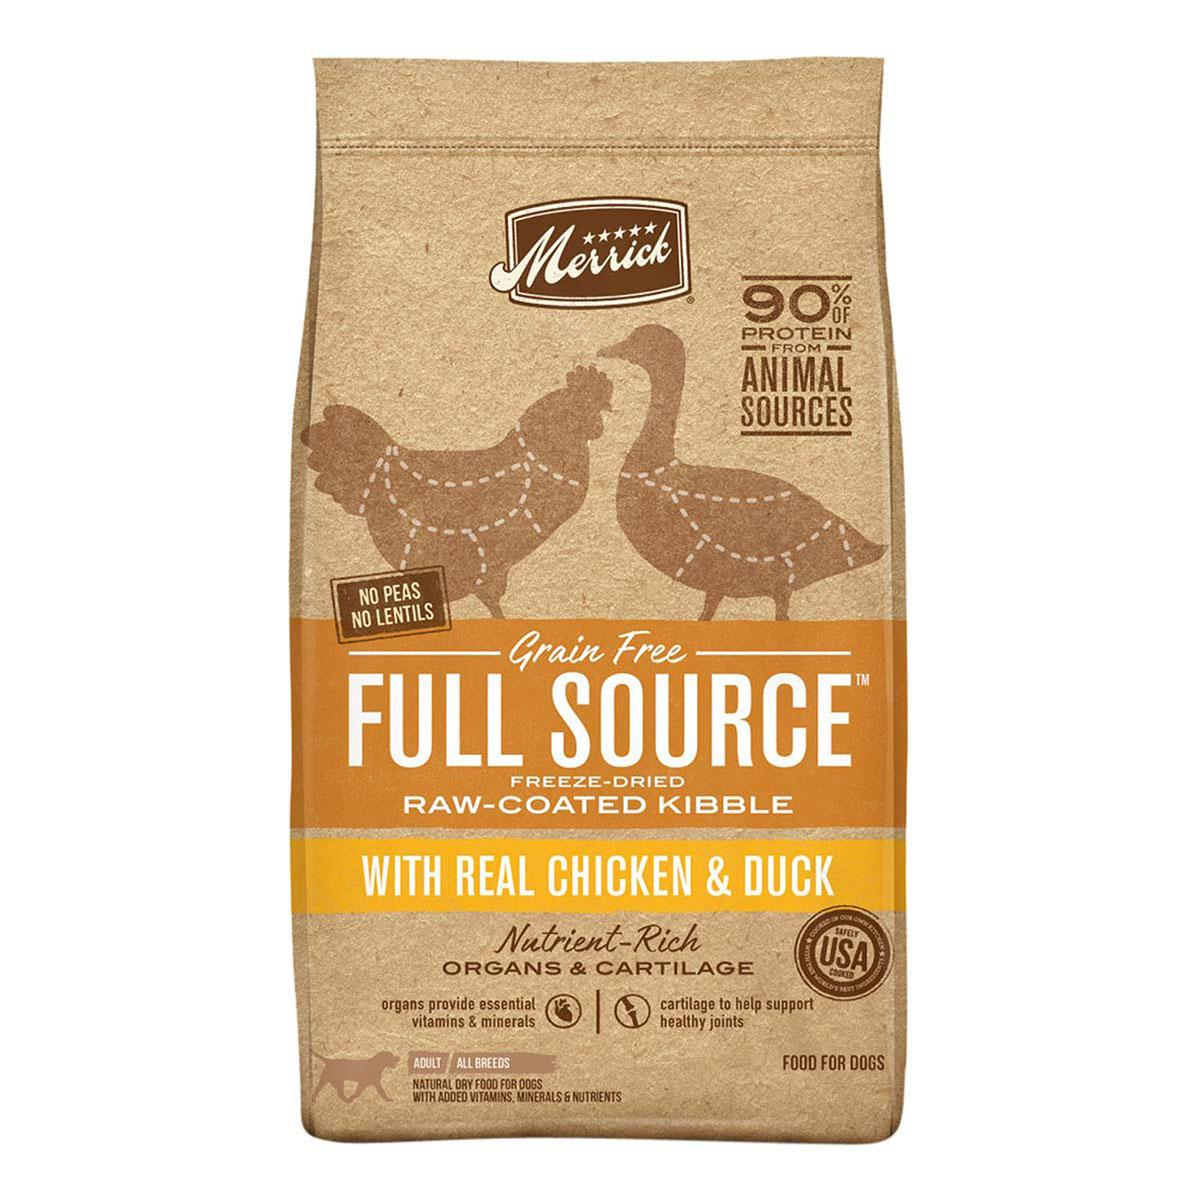 Merrick Full Source Grain-Free Raw-Coated Kibble with Real Chicken & Duck Dry Dog Food